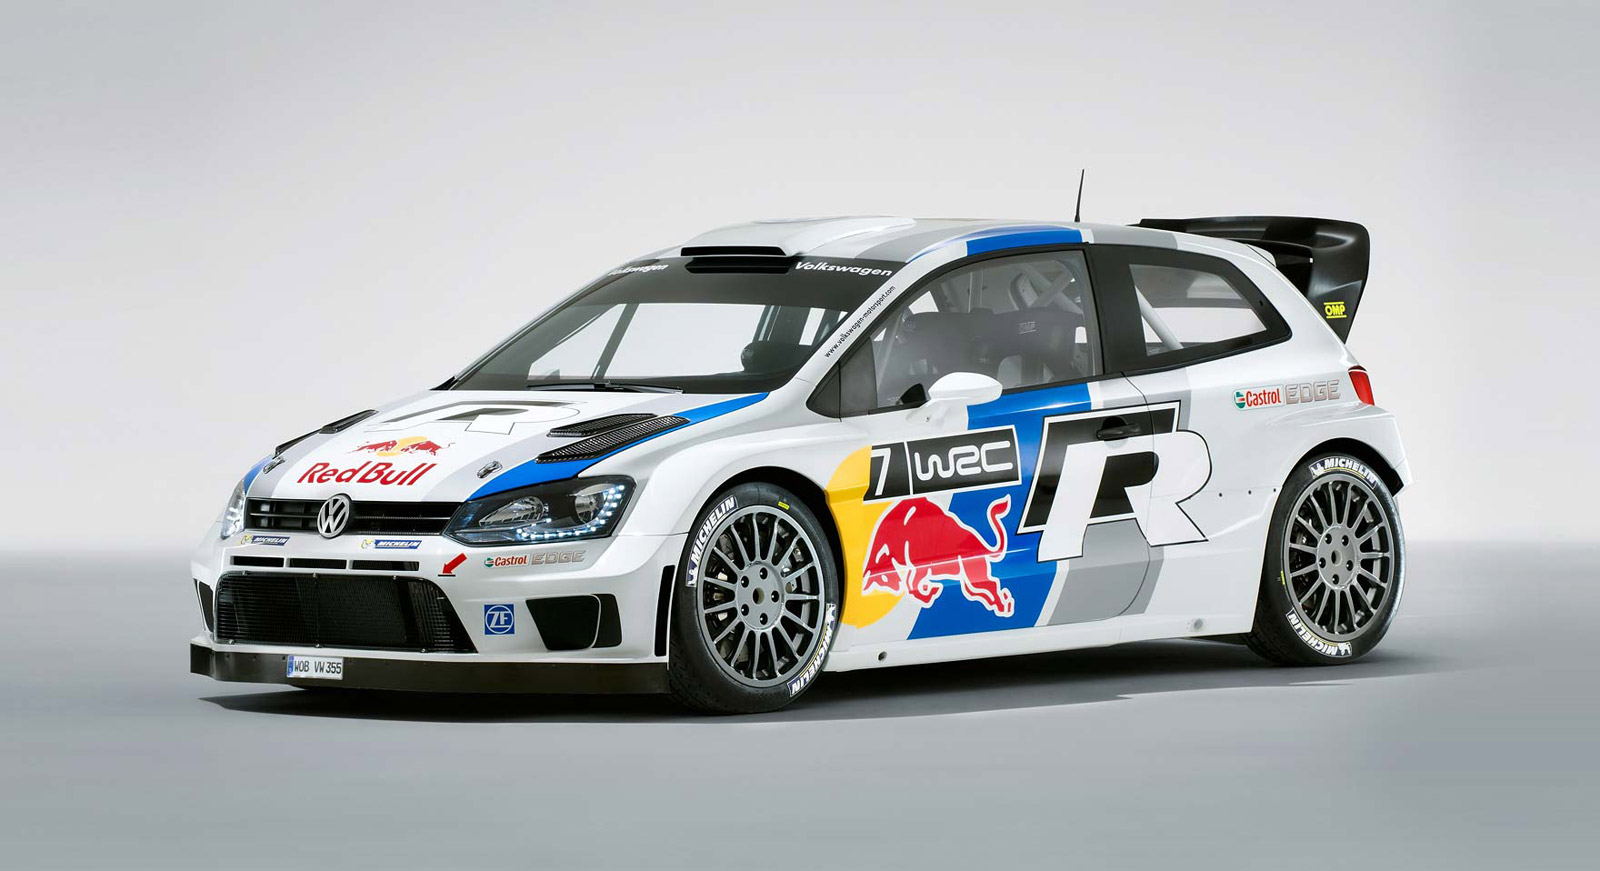 volkswagen polo r wrc attacks a rally stage in slow motion video. Black Bedroom Furniture Sets. Home Design Ideas